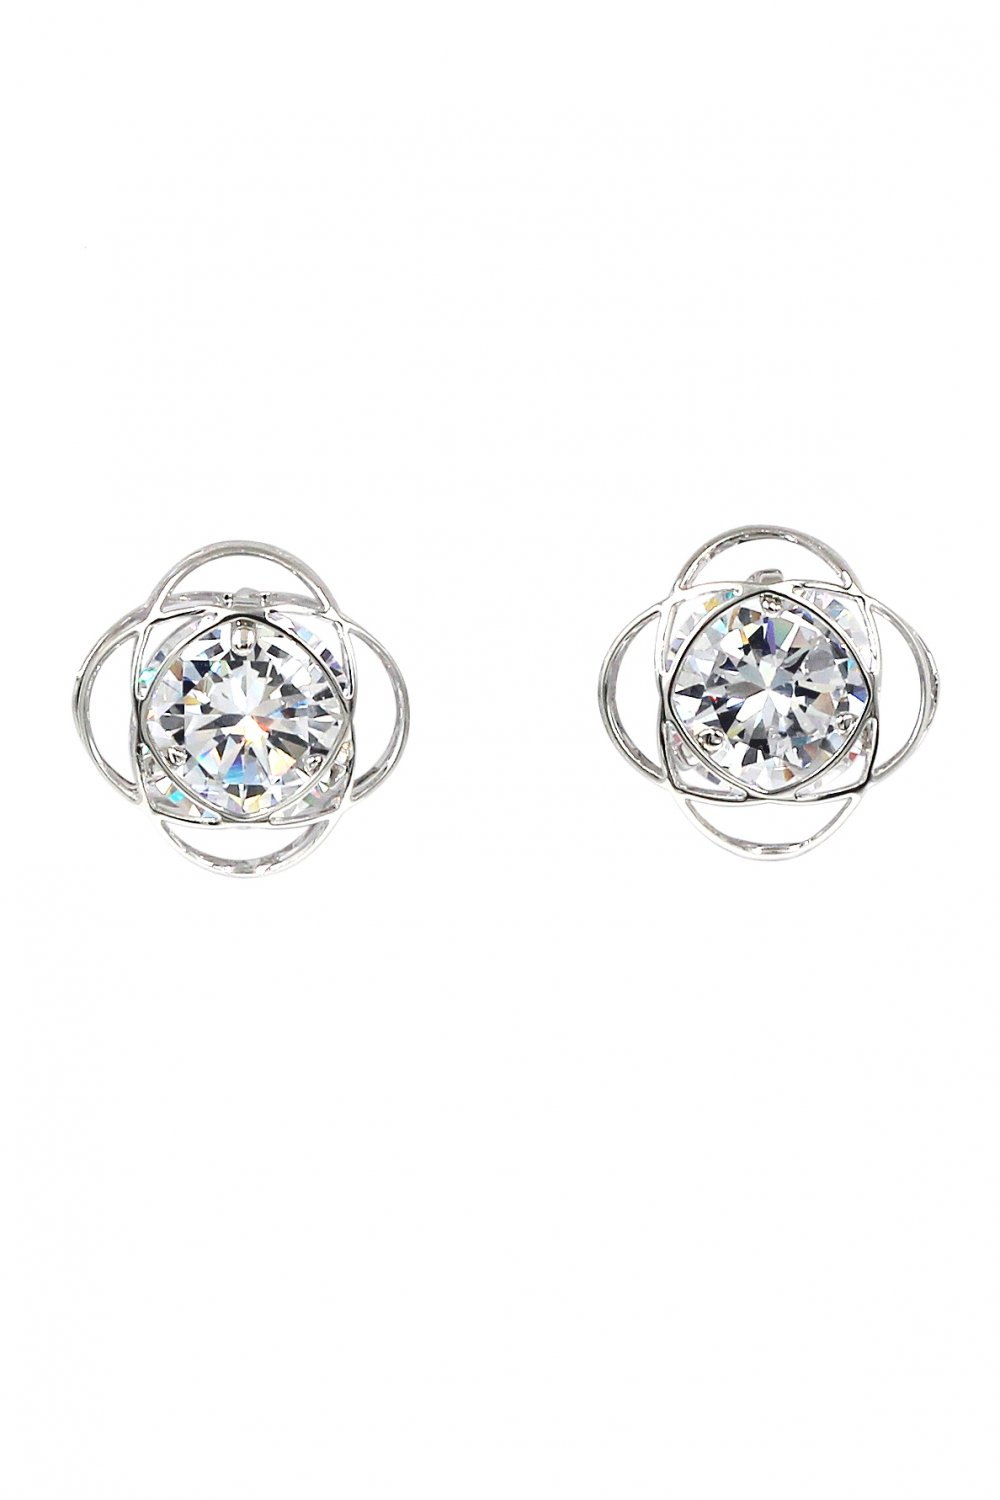 Exquisite flower crystal silver earrings